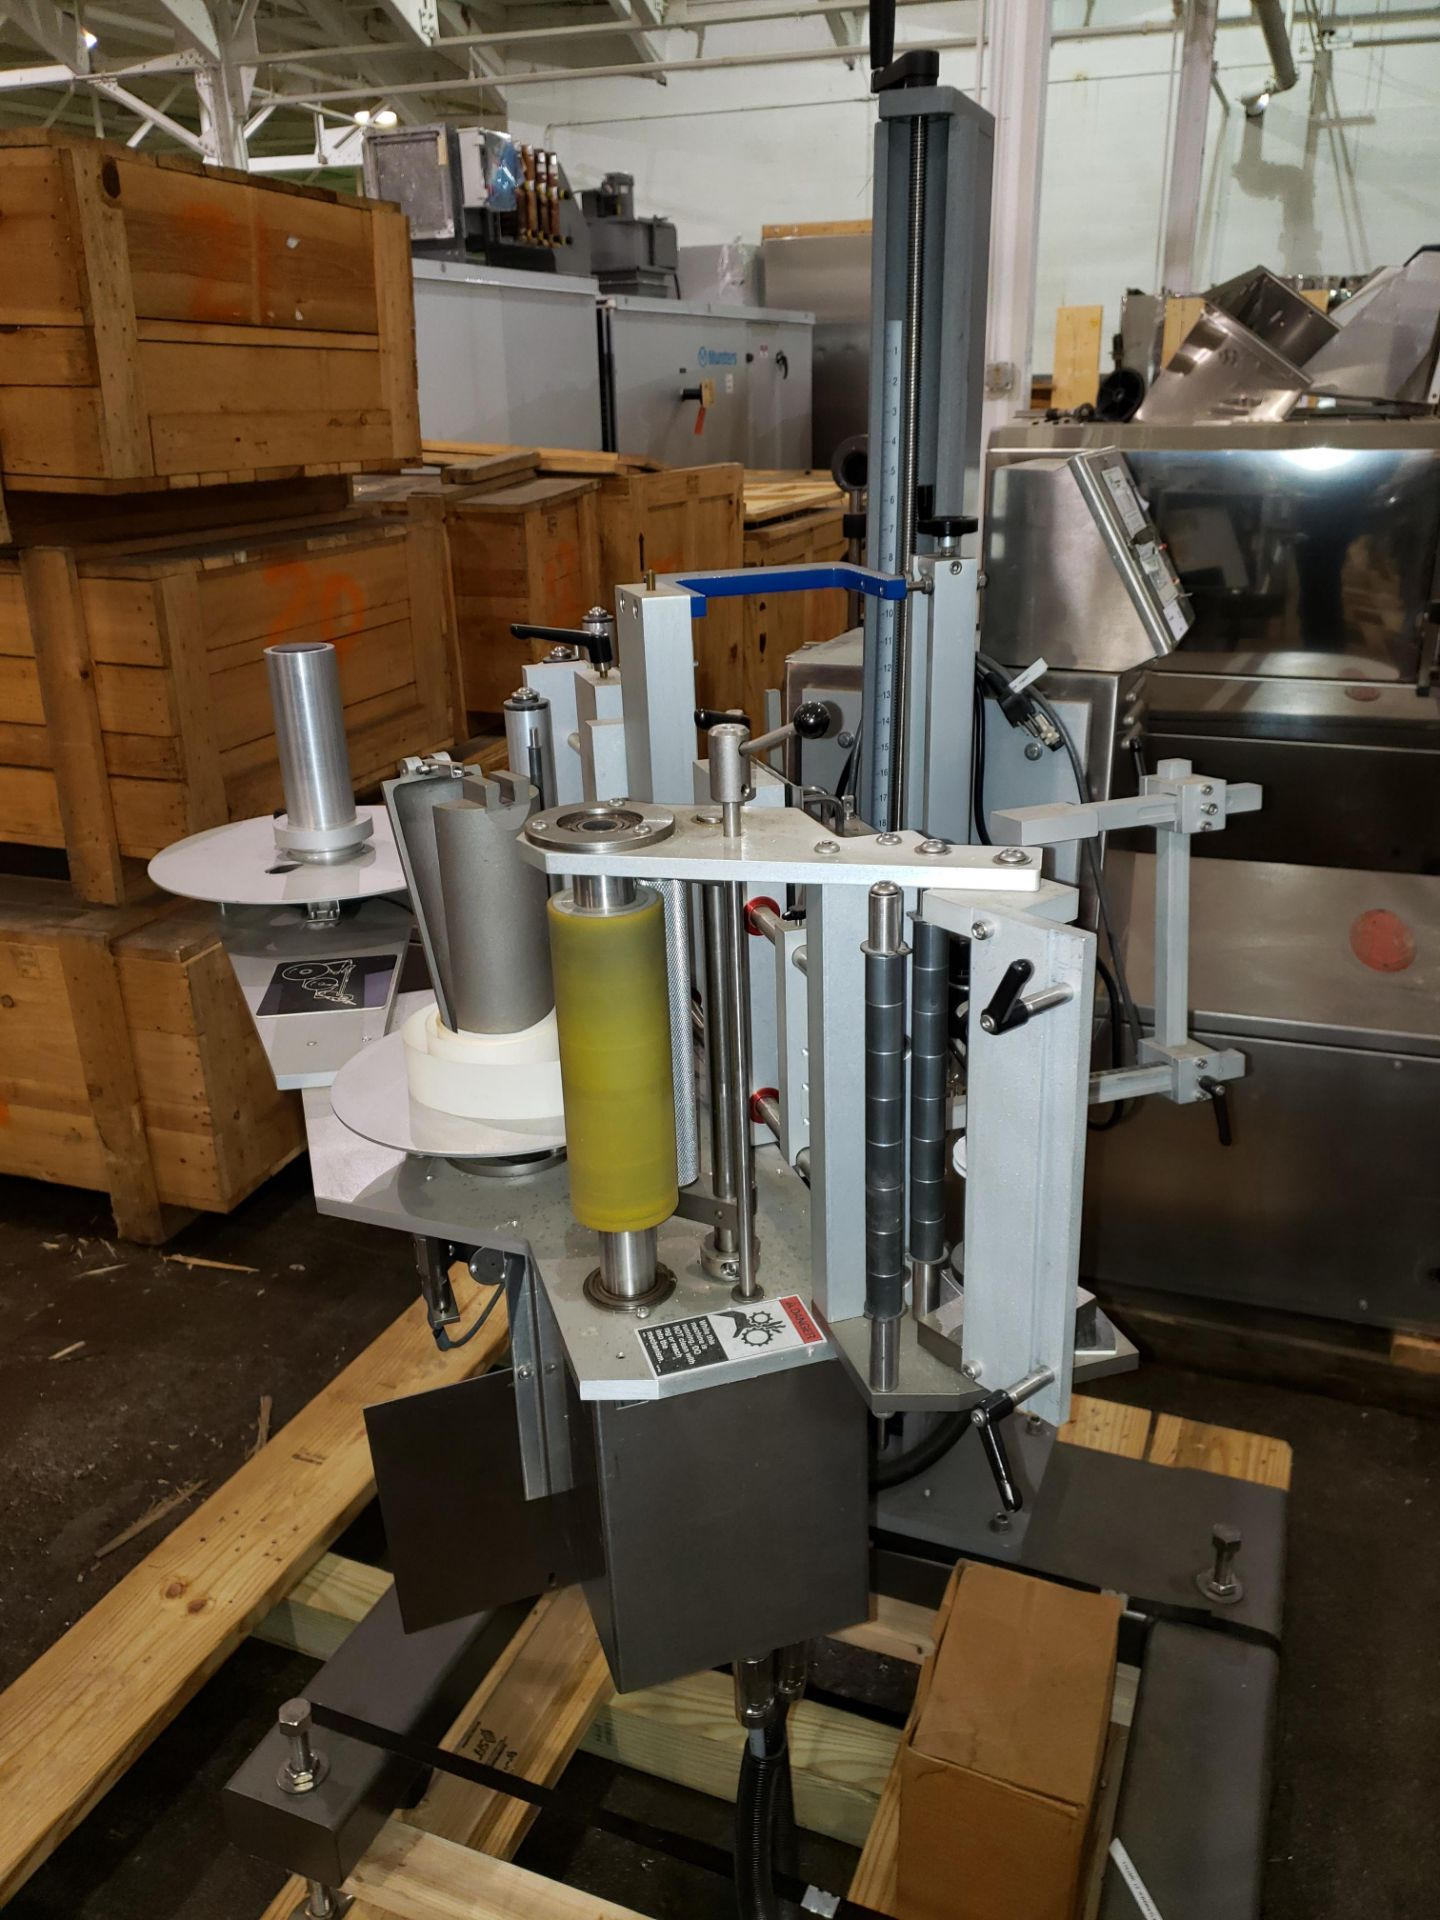 Lot 39 - Used New Jersey print and apply labeler, model 251VL, with smart date coder, with controls on